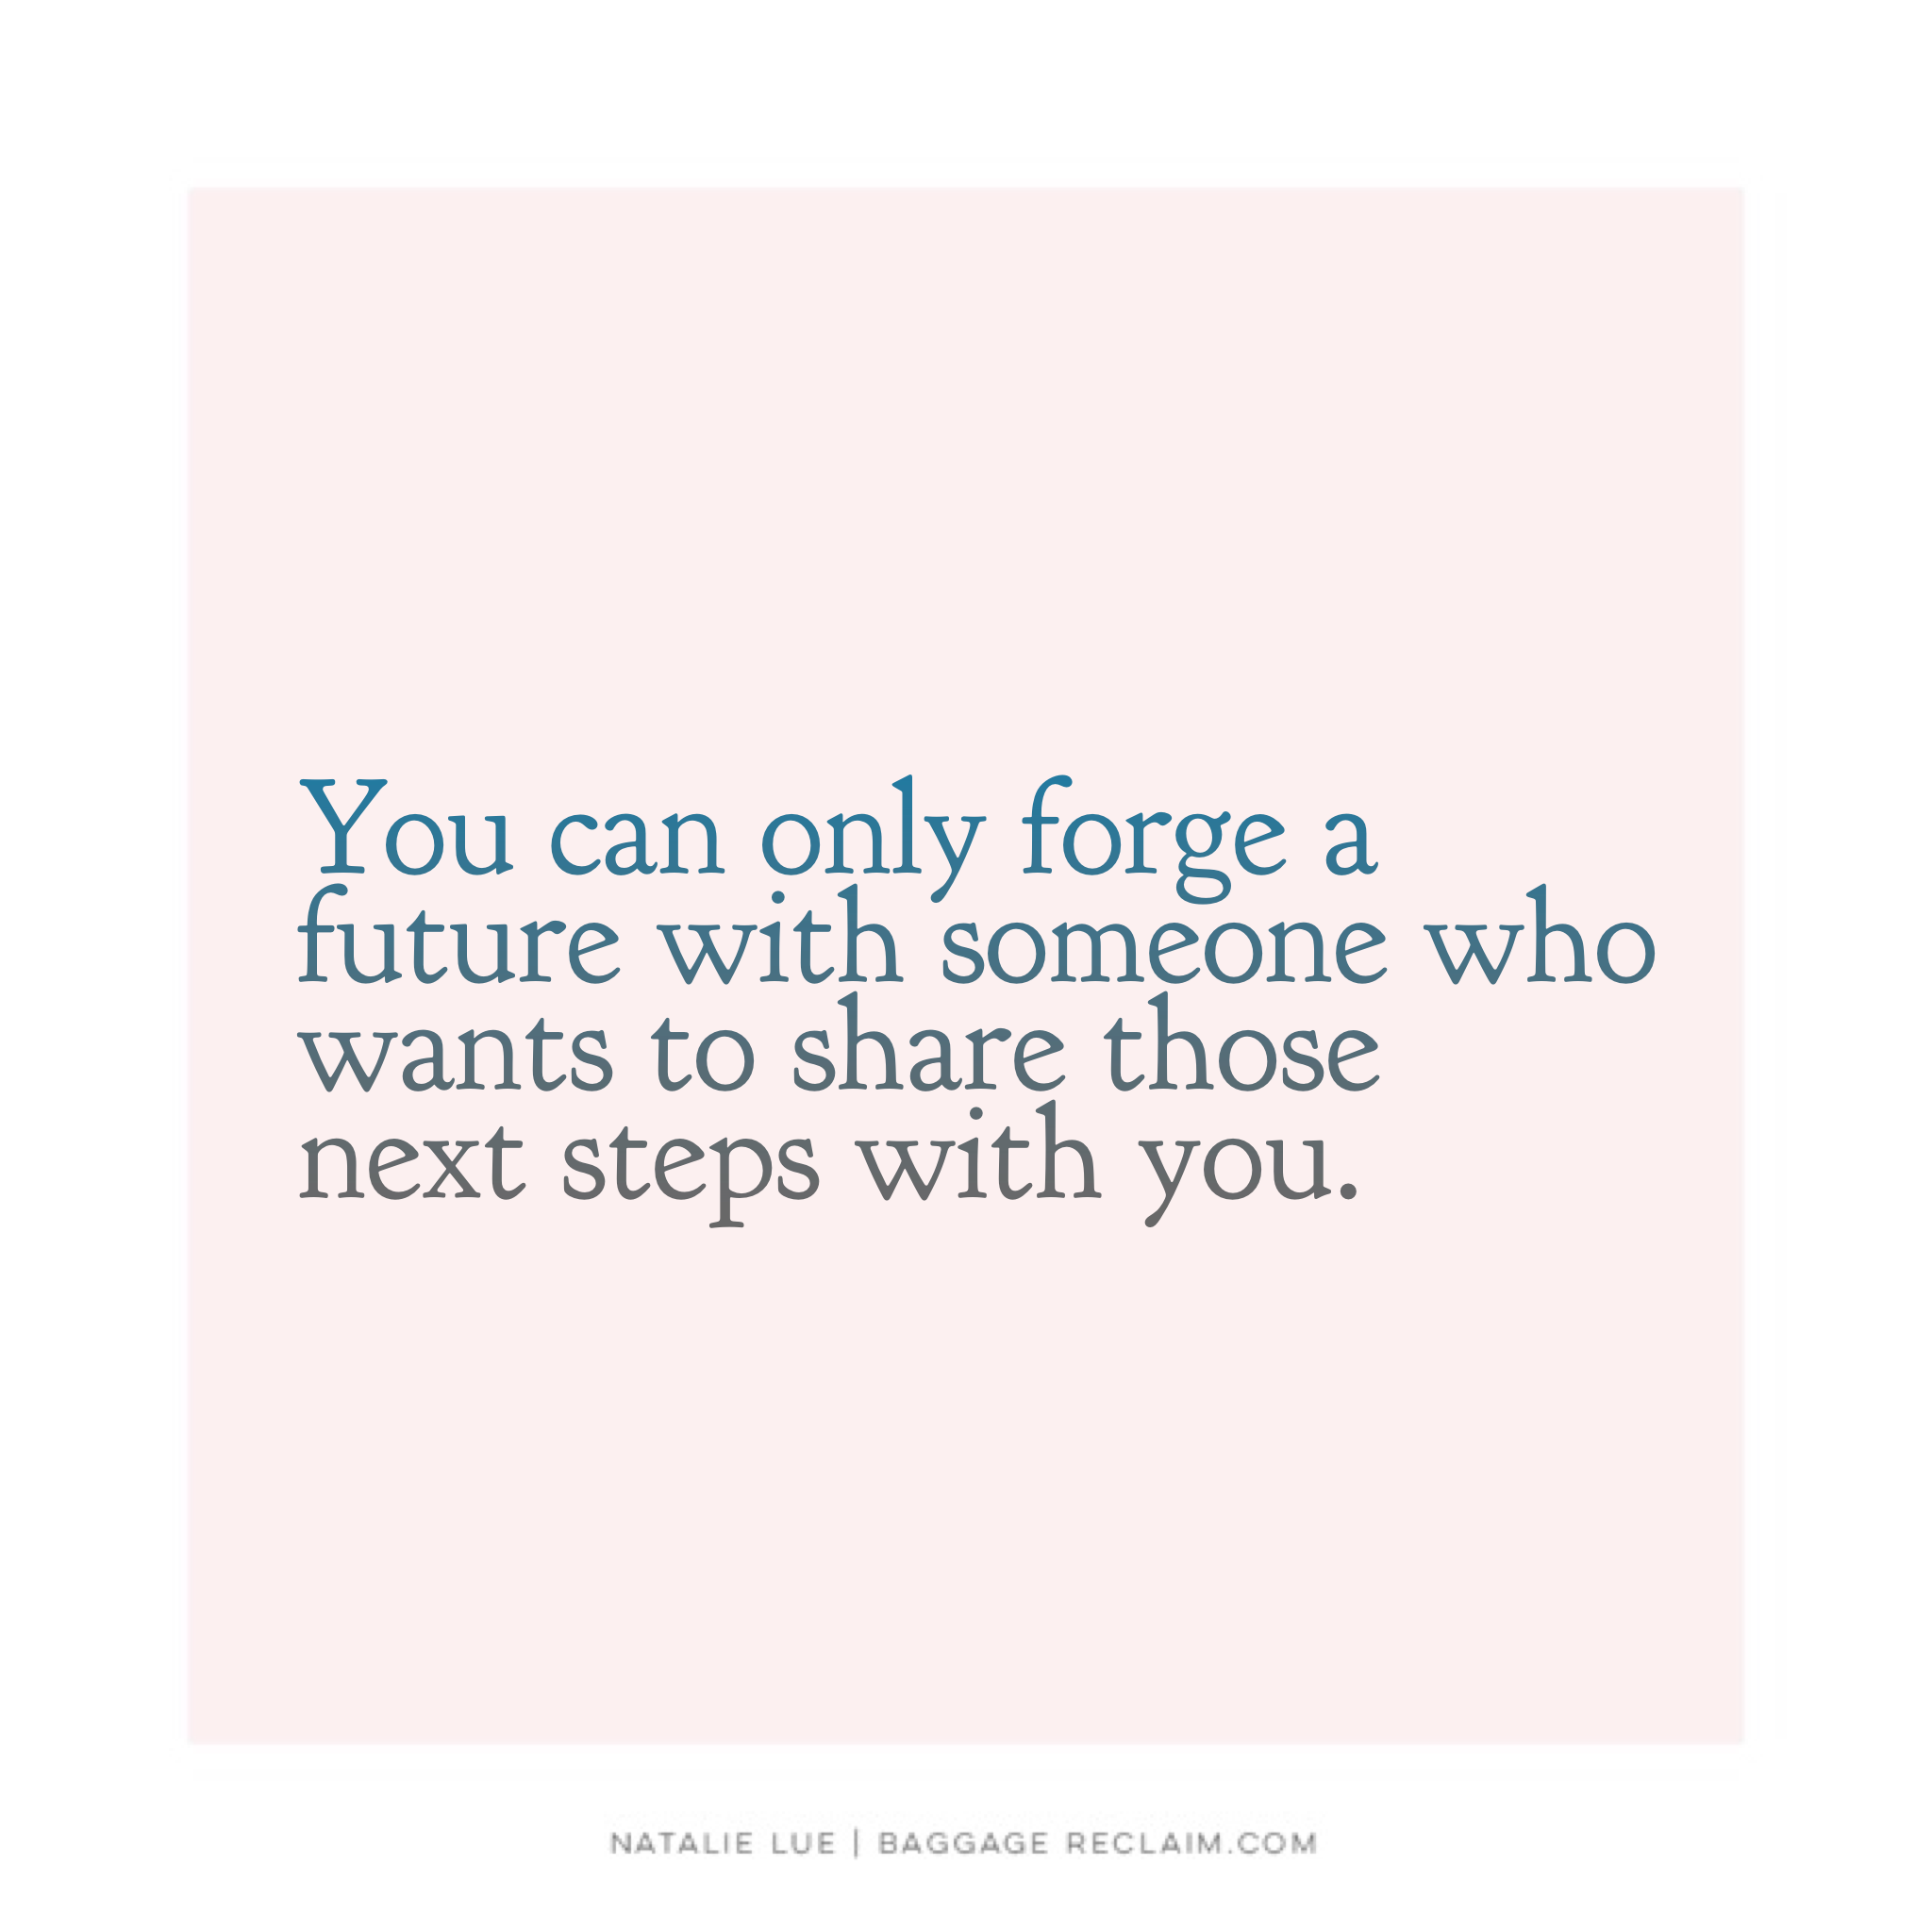 You can only forge a relationship with someone who wants to share the next steps with you.